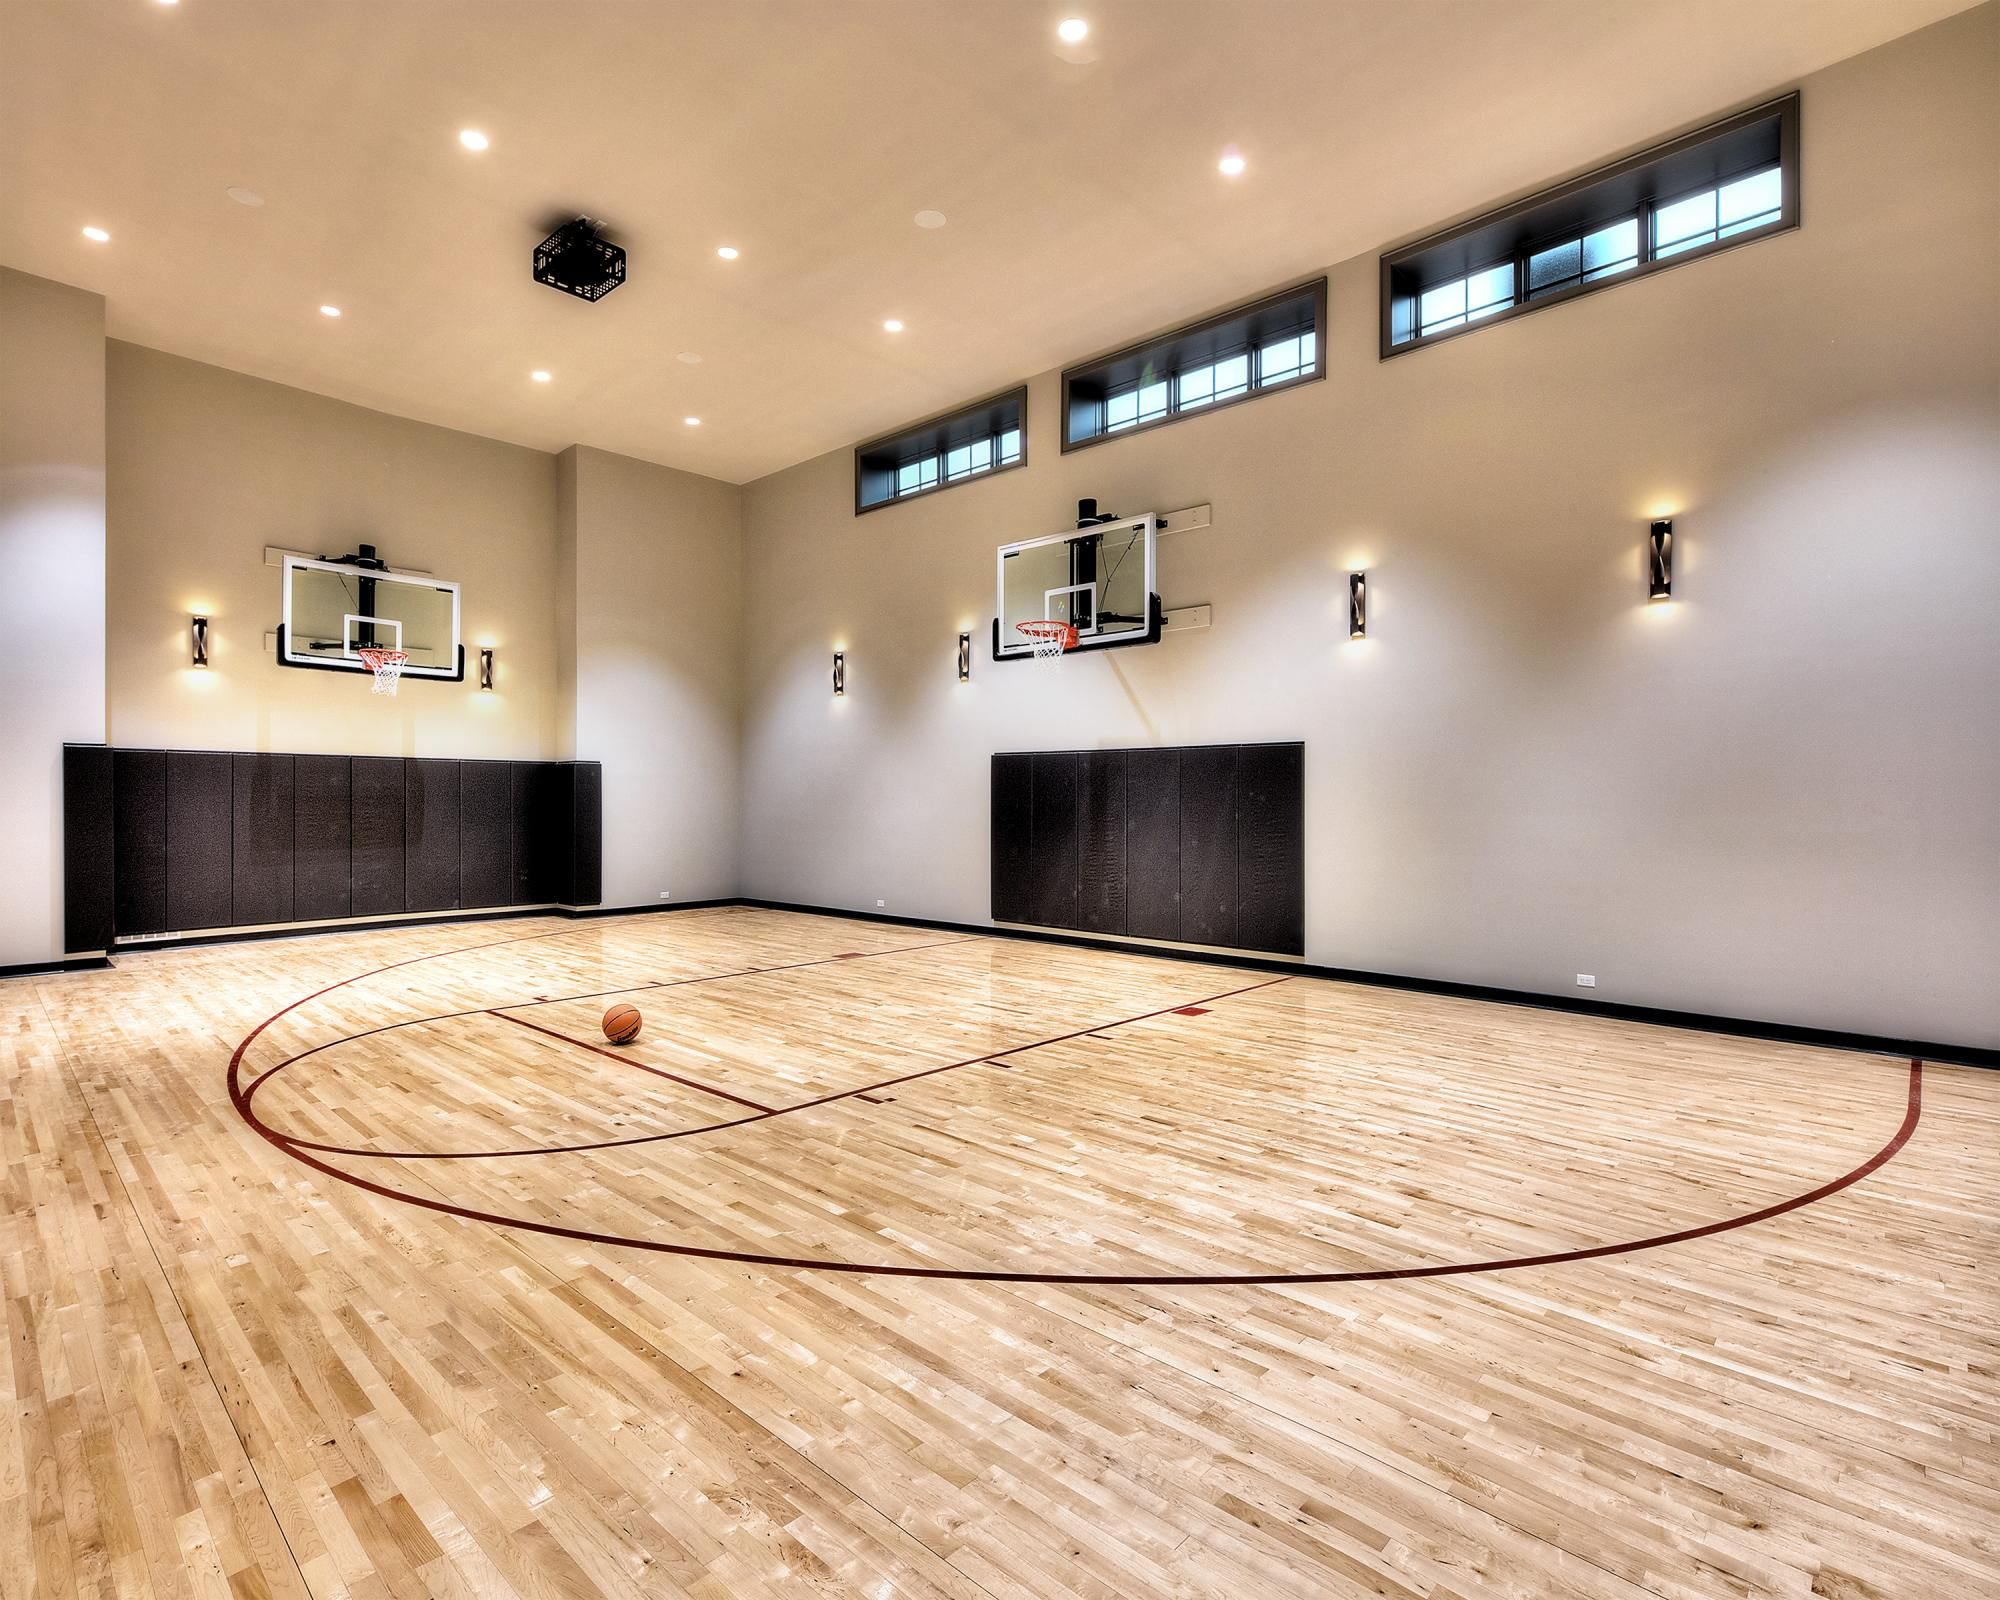 Sport Court Home Basketball Court Basketball Room Indoor Basketball Court